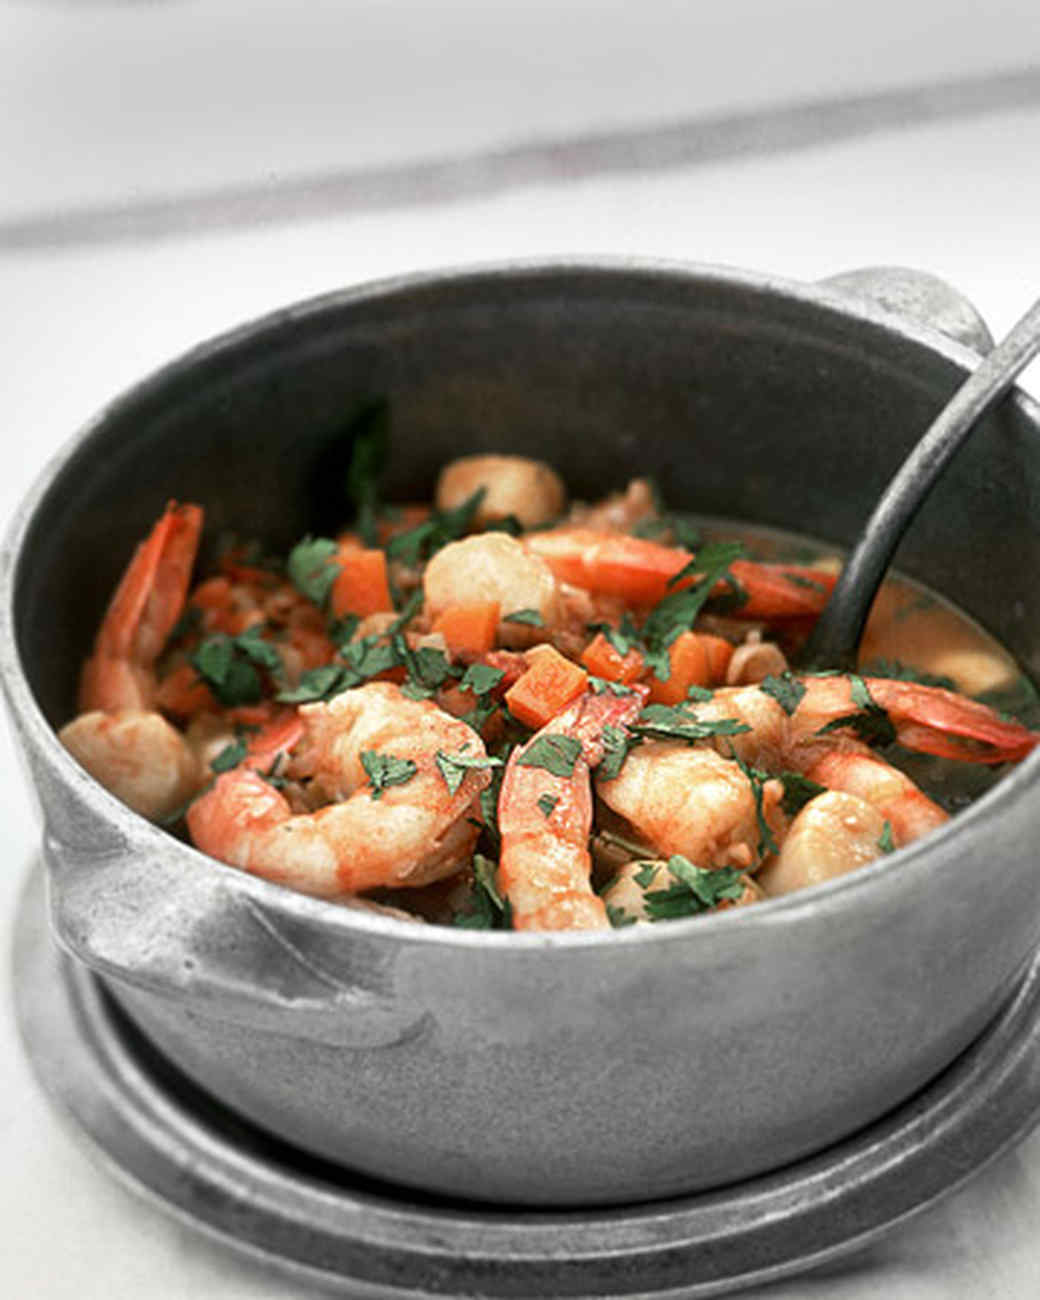 Shrimp and Scallop Stew with Israeli Couscous Pilaf